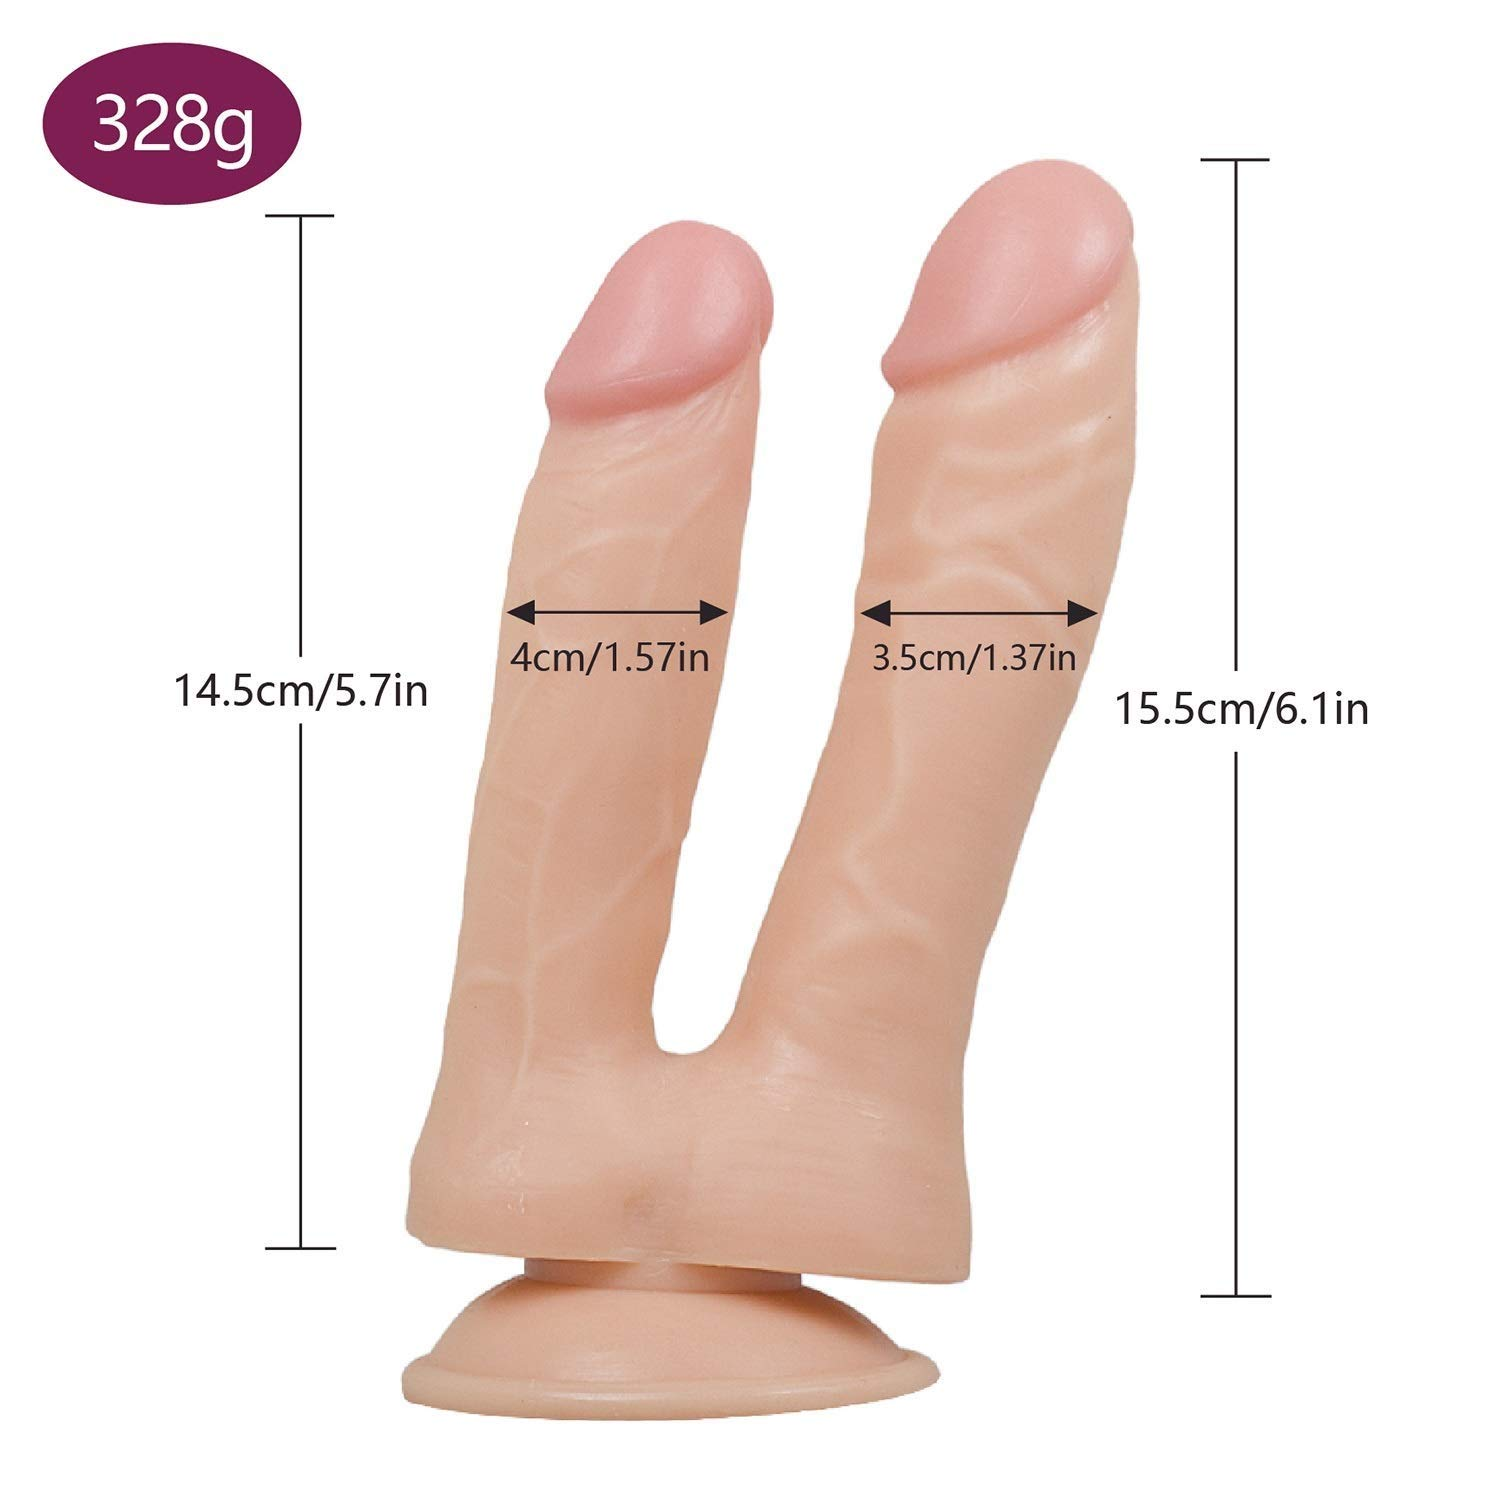 UOFFF Comfortable Toy Female Sucker Toy 7.9'' Lesbian Double-Ended Super Long Double Realistic Flexible Massager Pleasure Wonderful Relax Toy -Safe and Non-Toxic by UOFFF